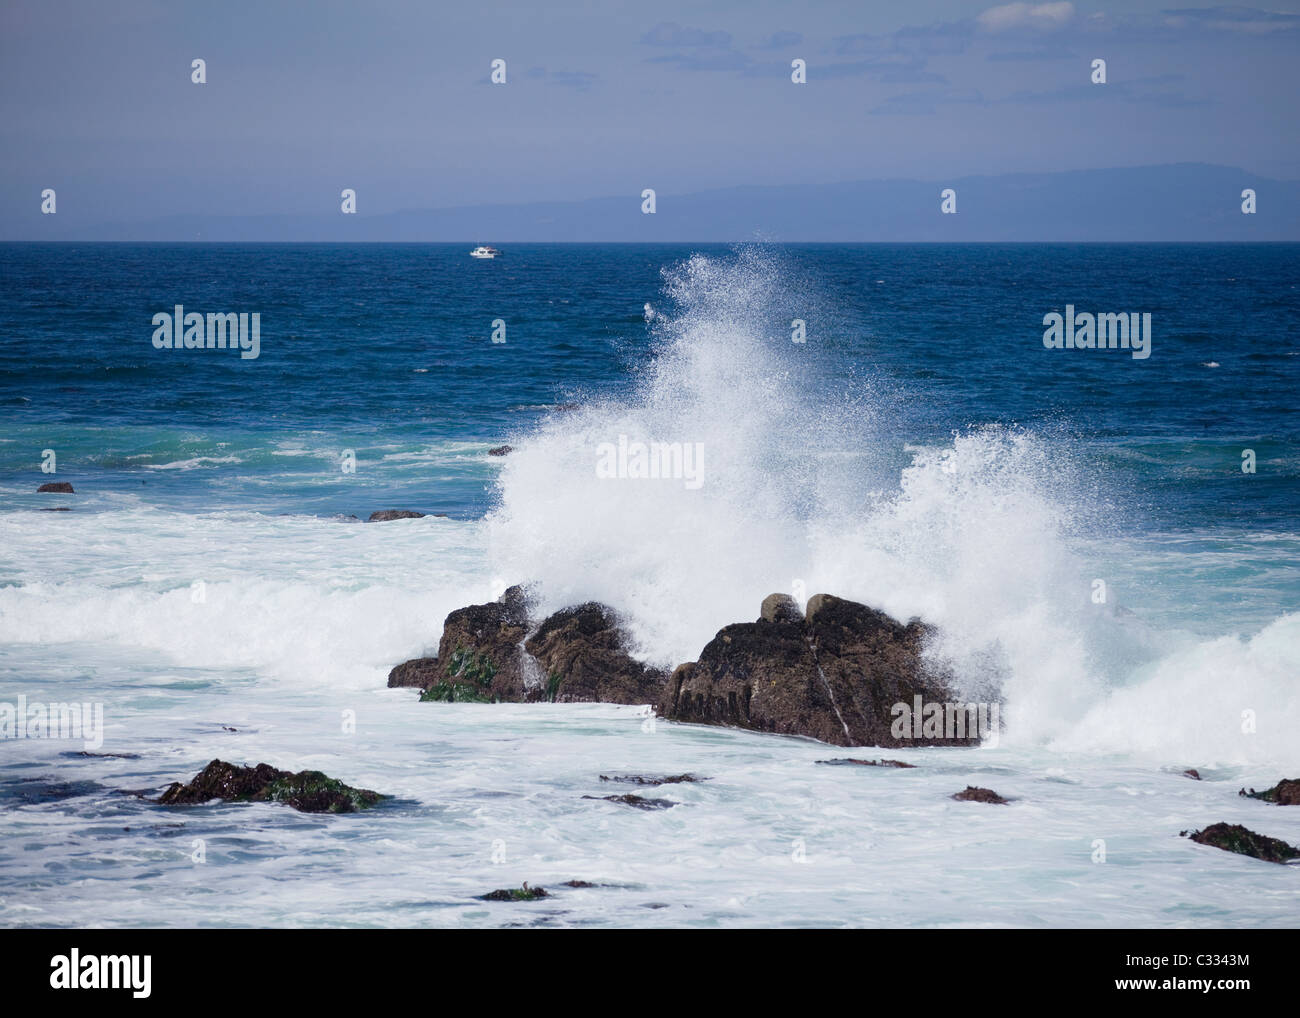 Pacific ocean surf crash on rocky shore - Stock Image